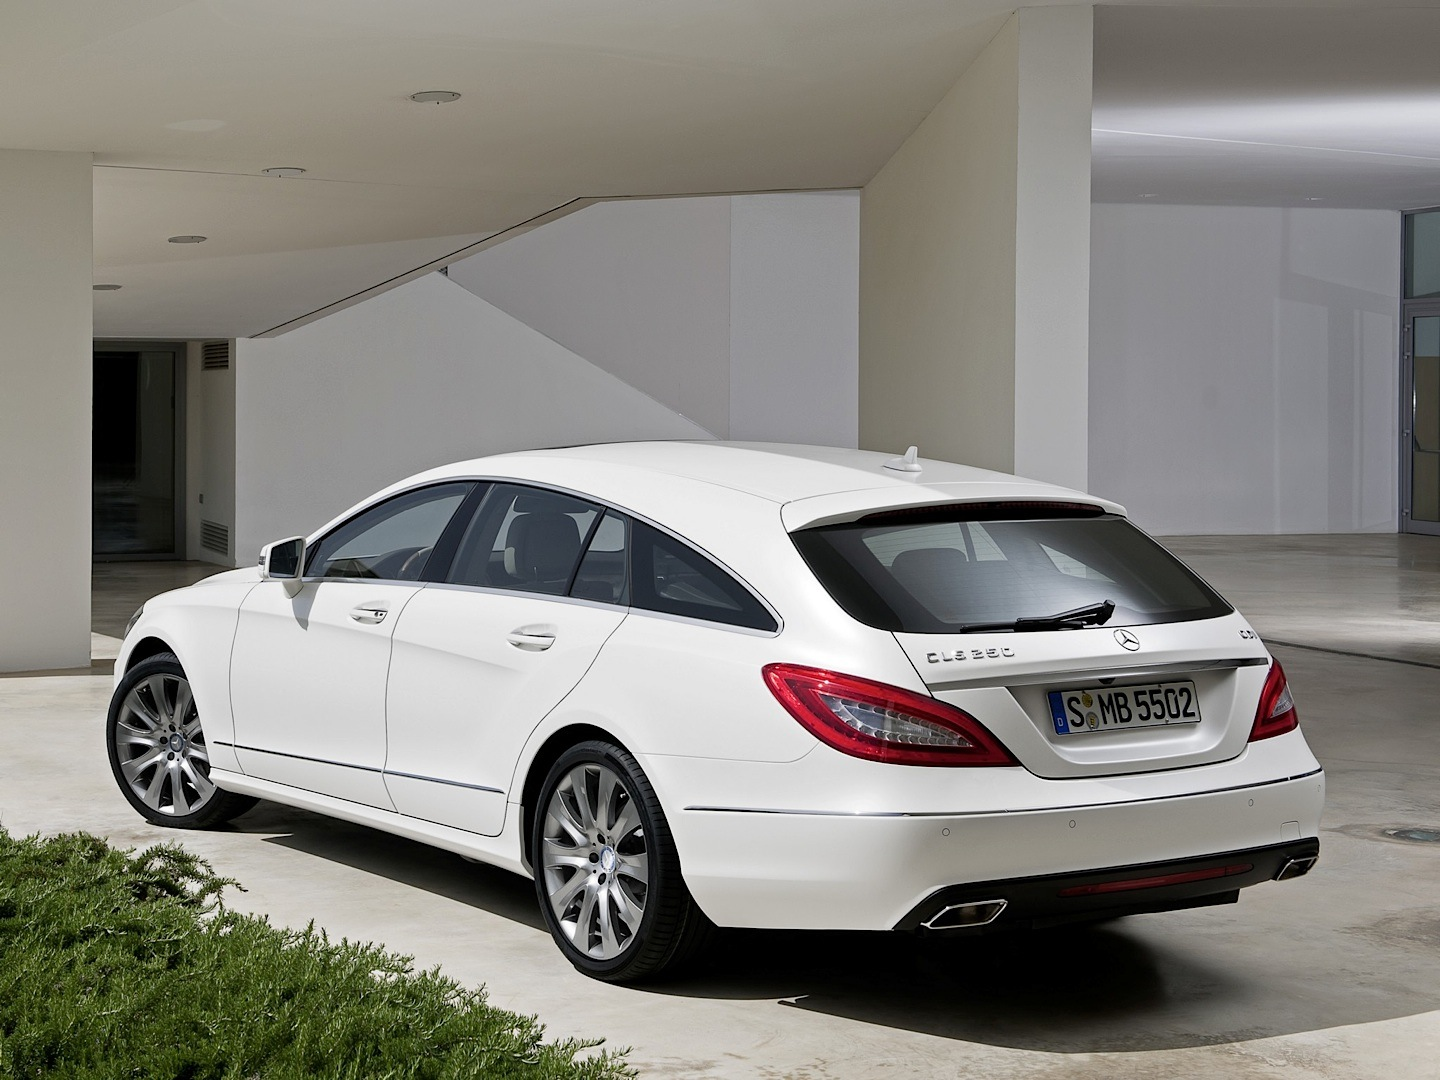 Cls 250 cdi shooting brake is not that slow autoevolution for Mercedes benz cl 250